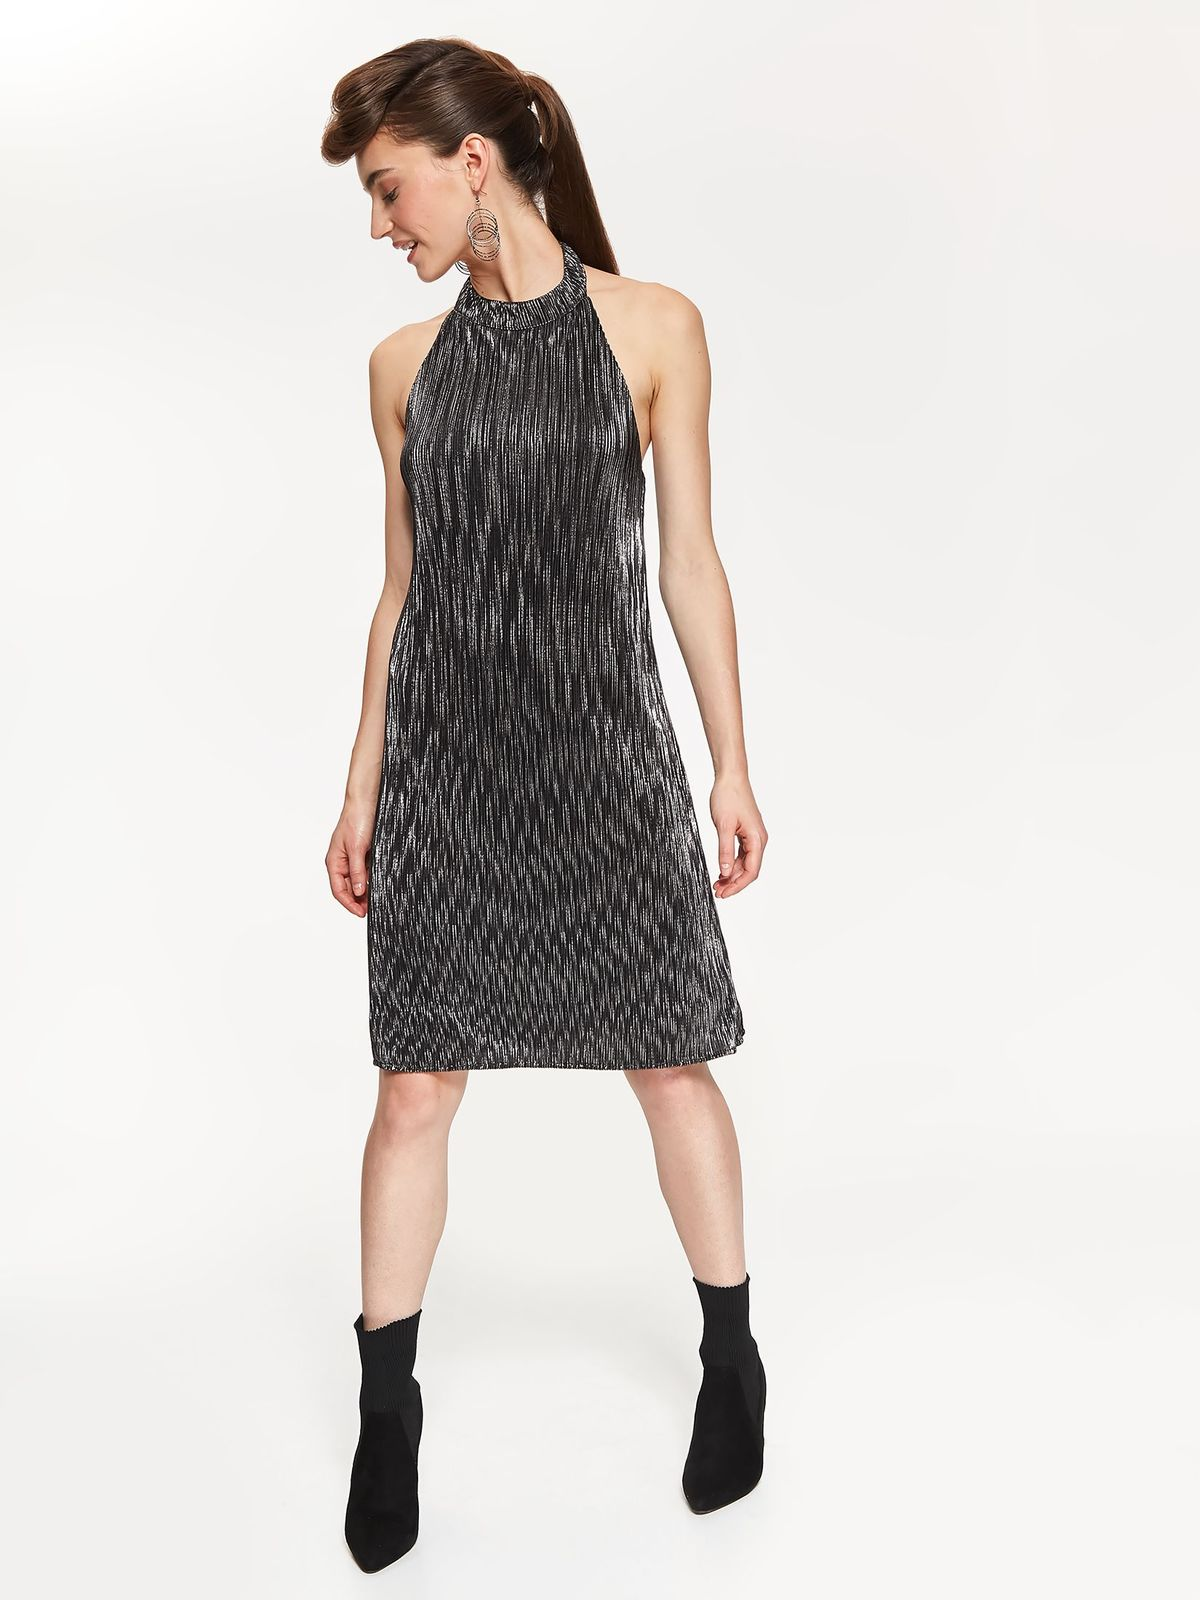 Top Secret silver occasional flared dress off shoulder from shiny fabric with metallic aspect